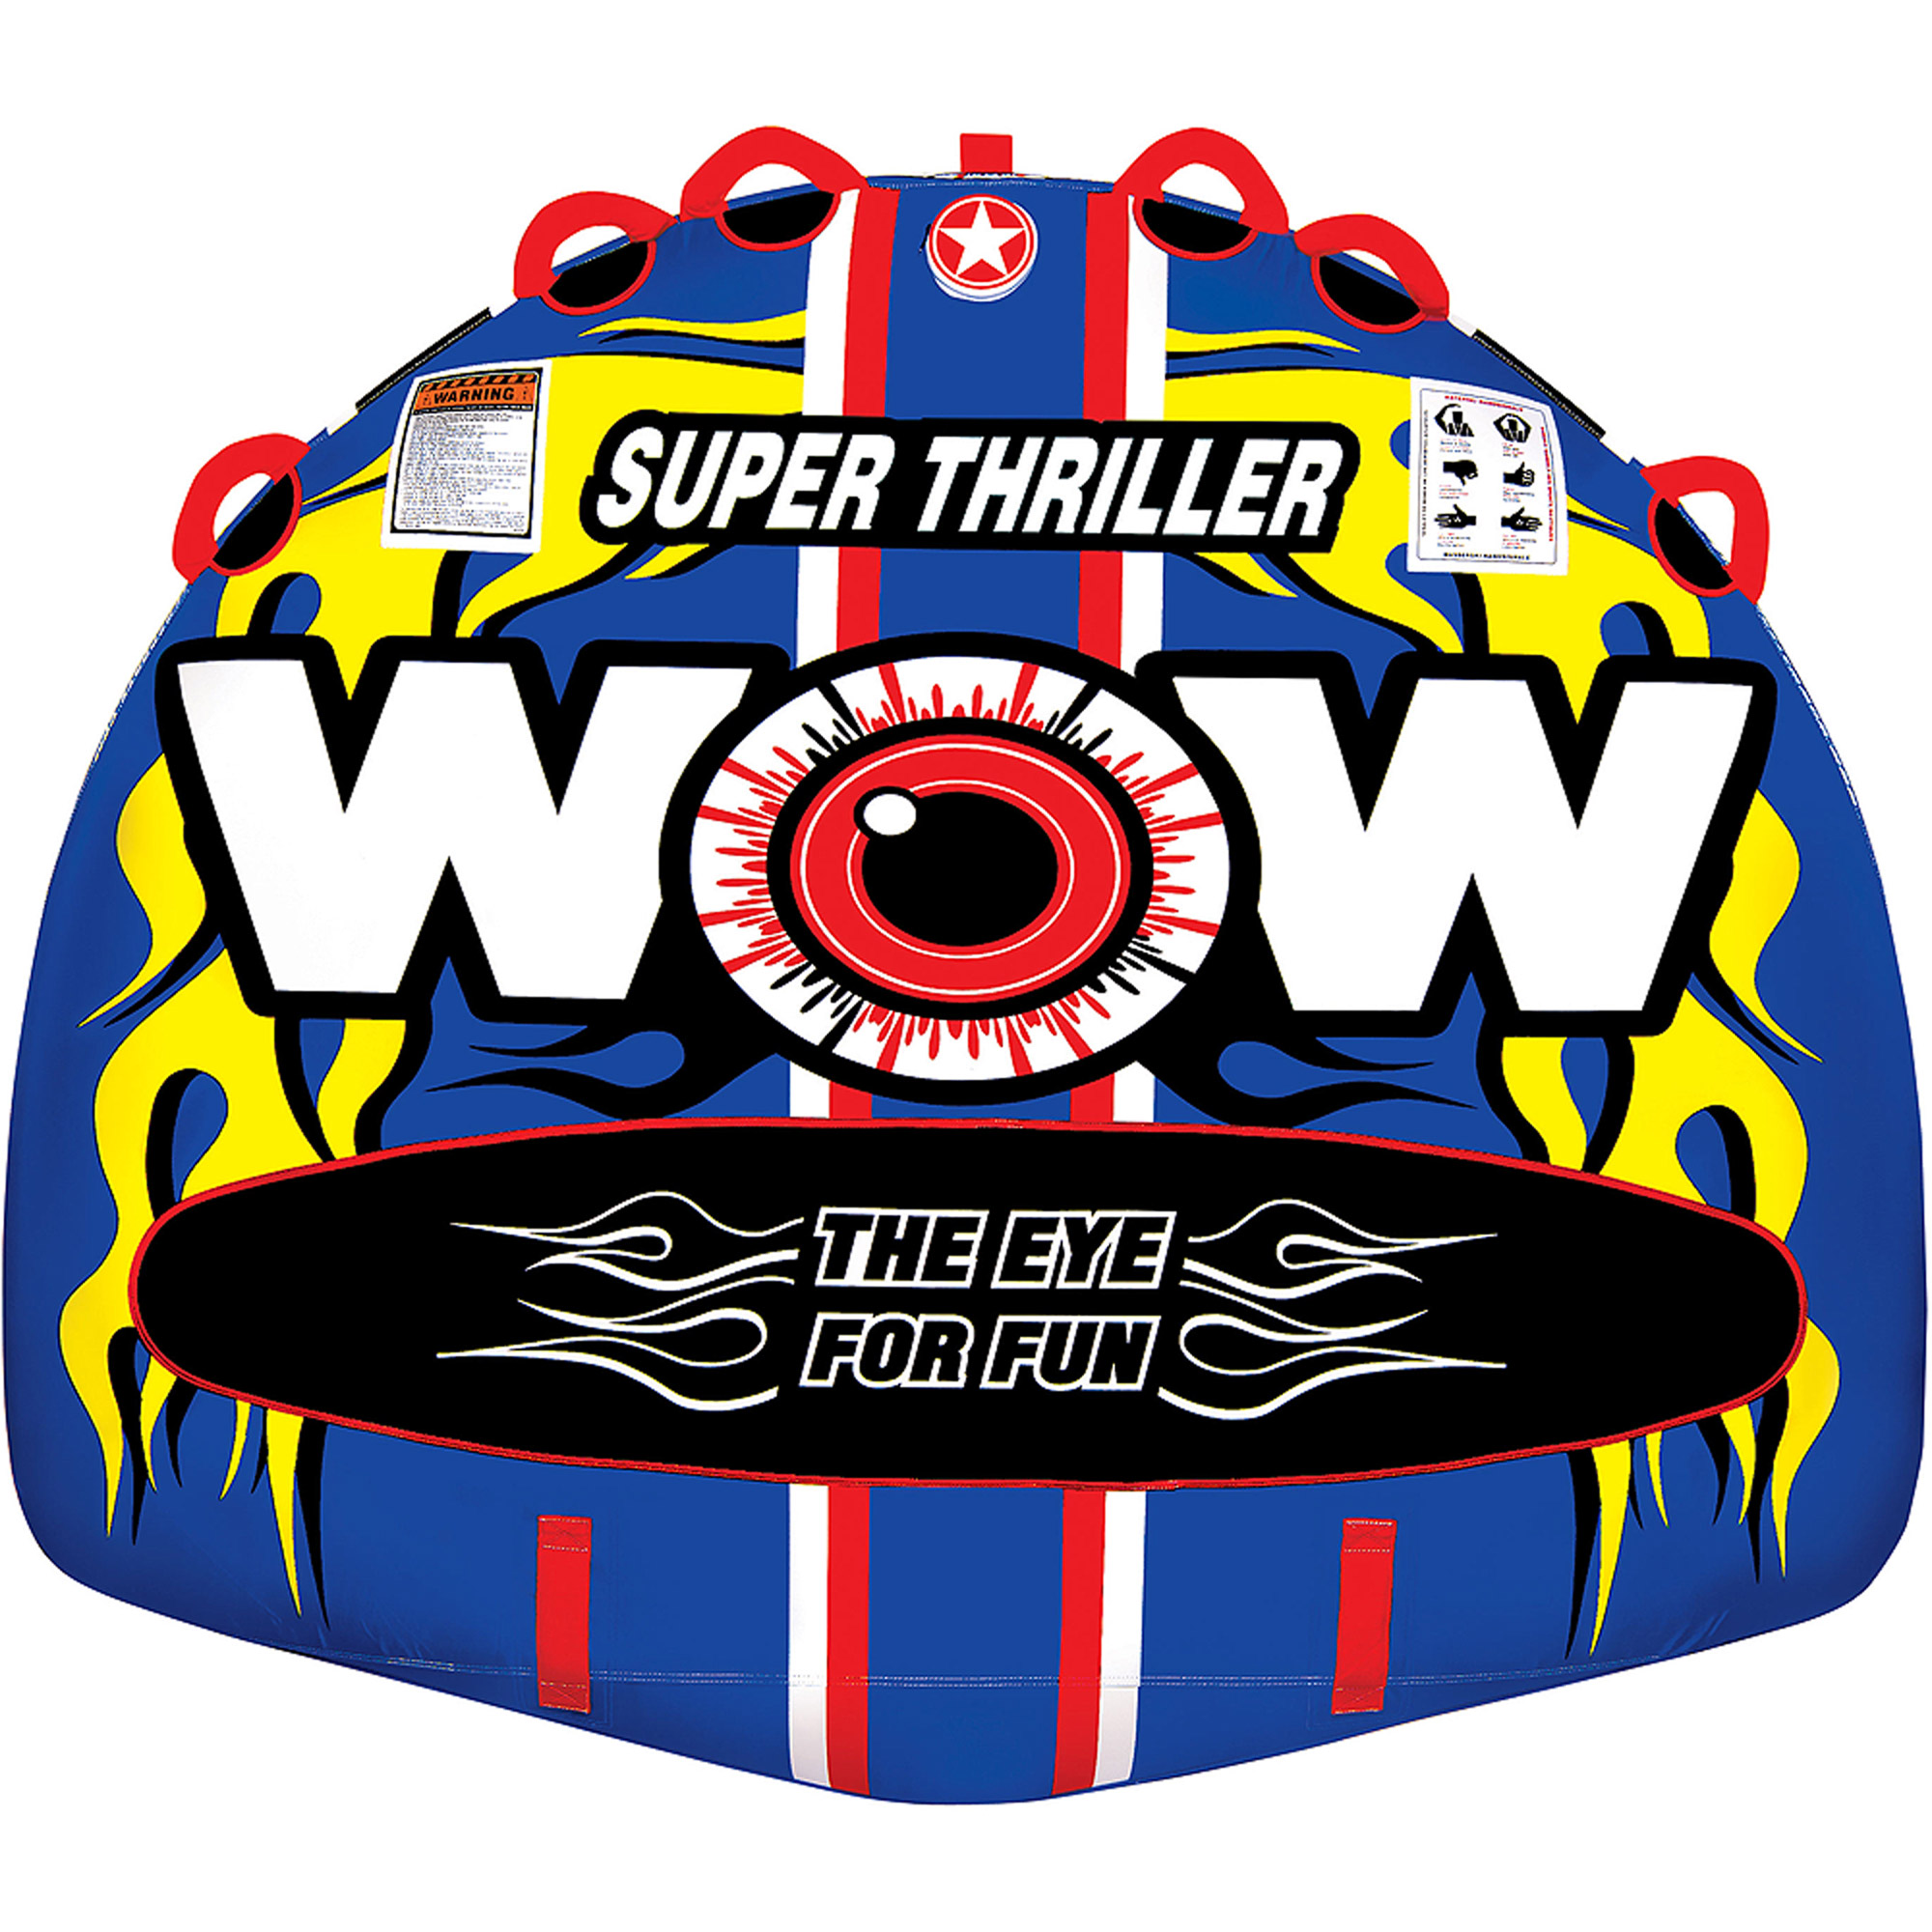 WOW World of Watersports 11-1080 Super Thriller Boat Tube Towable, Inflatable, 1 to 3 Riders by World of Watersports